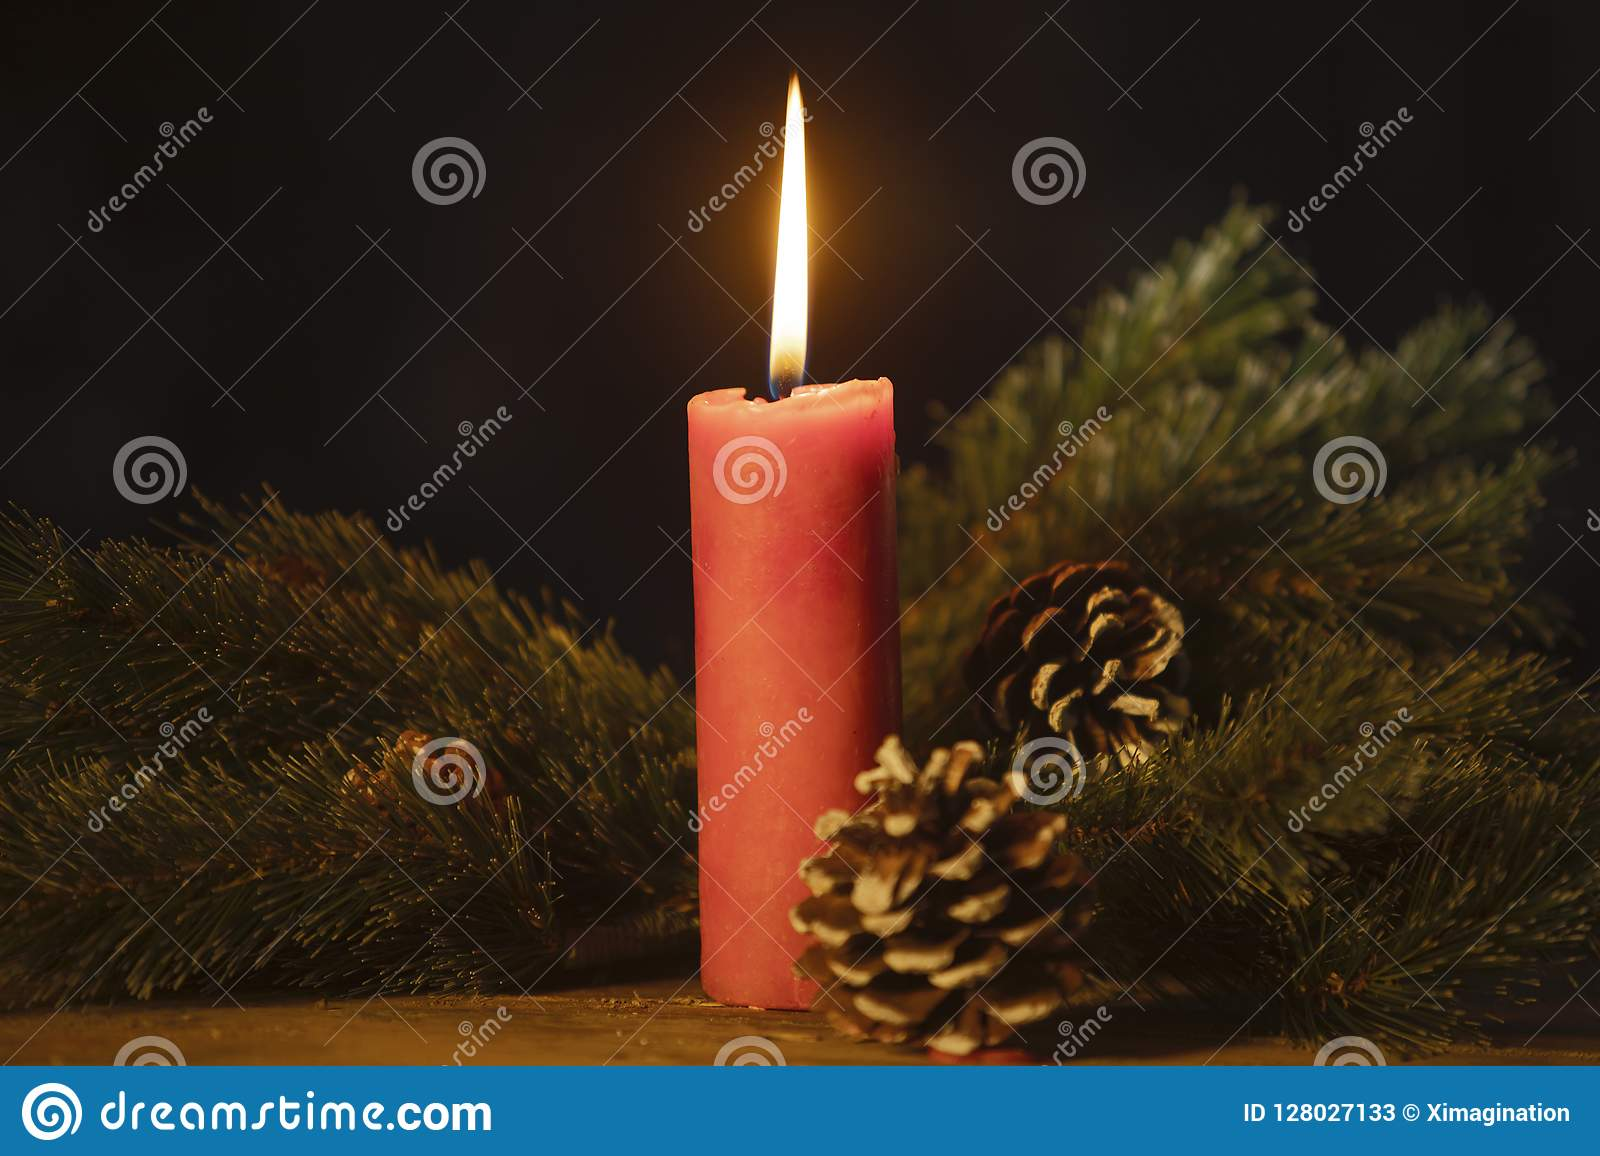 Fir tree branches with burning candle on table